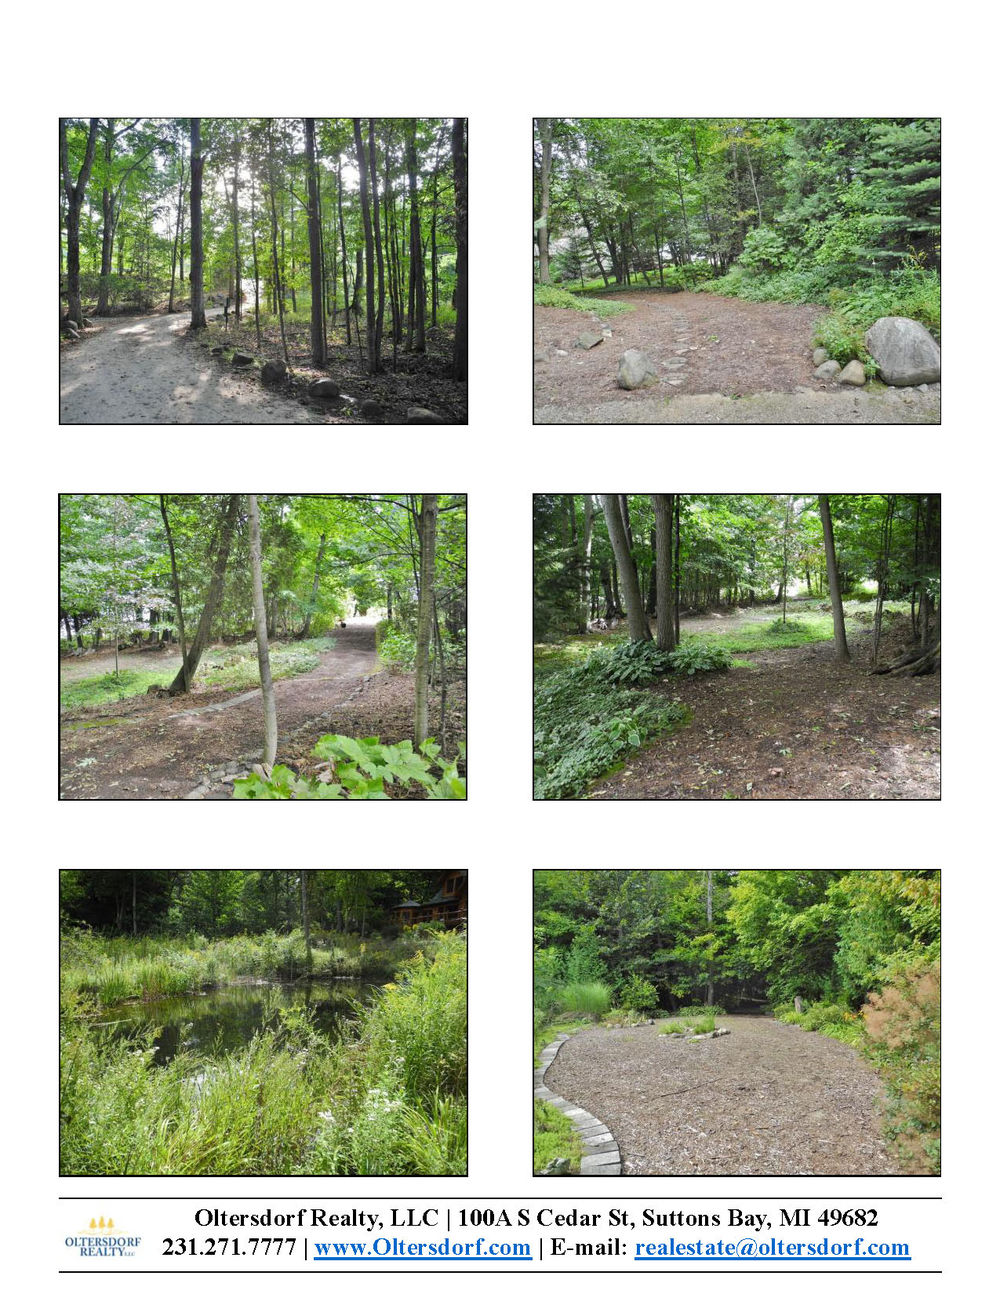 7156 N W Bay Shore Drive, Northport, MI Vacant waterfront lot for sale by Oltersdorf Realty LLC Marketing Packet (3).jpg